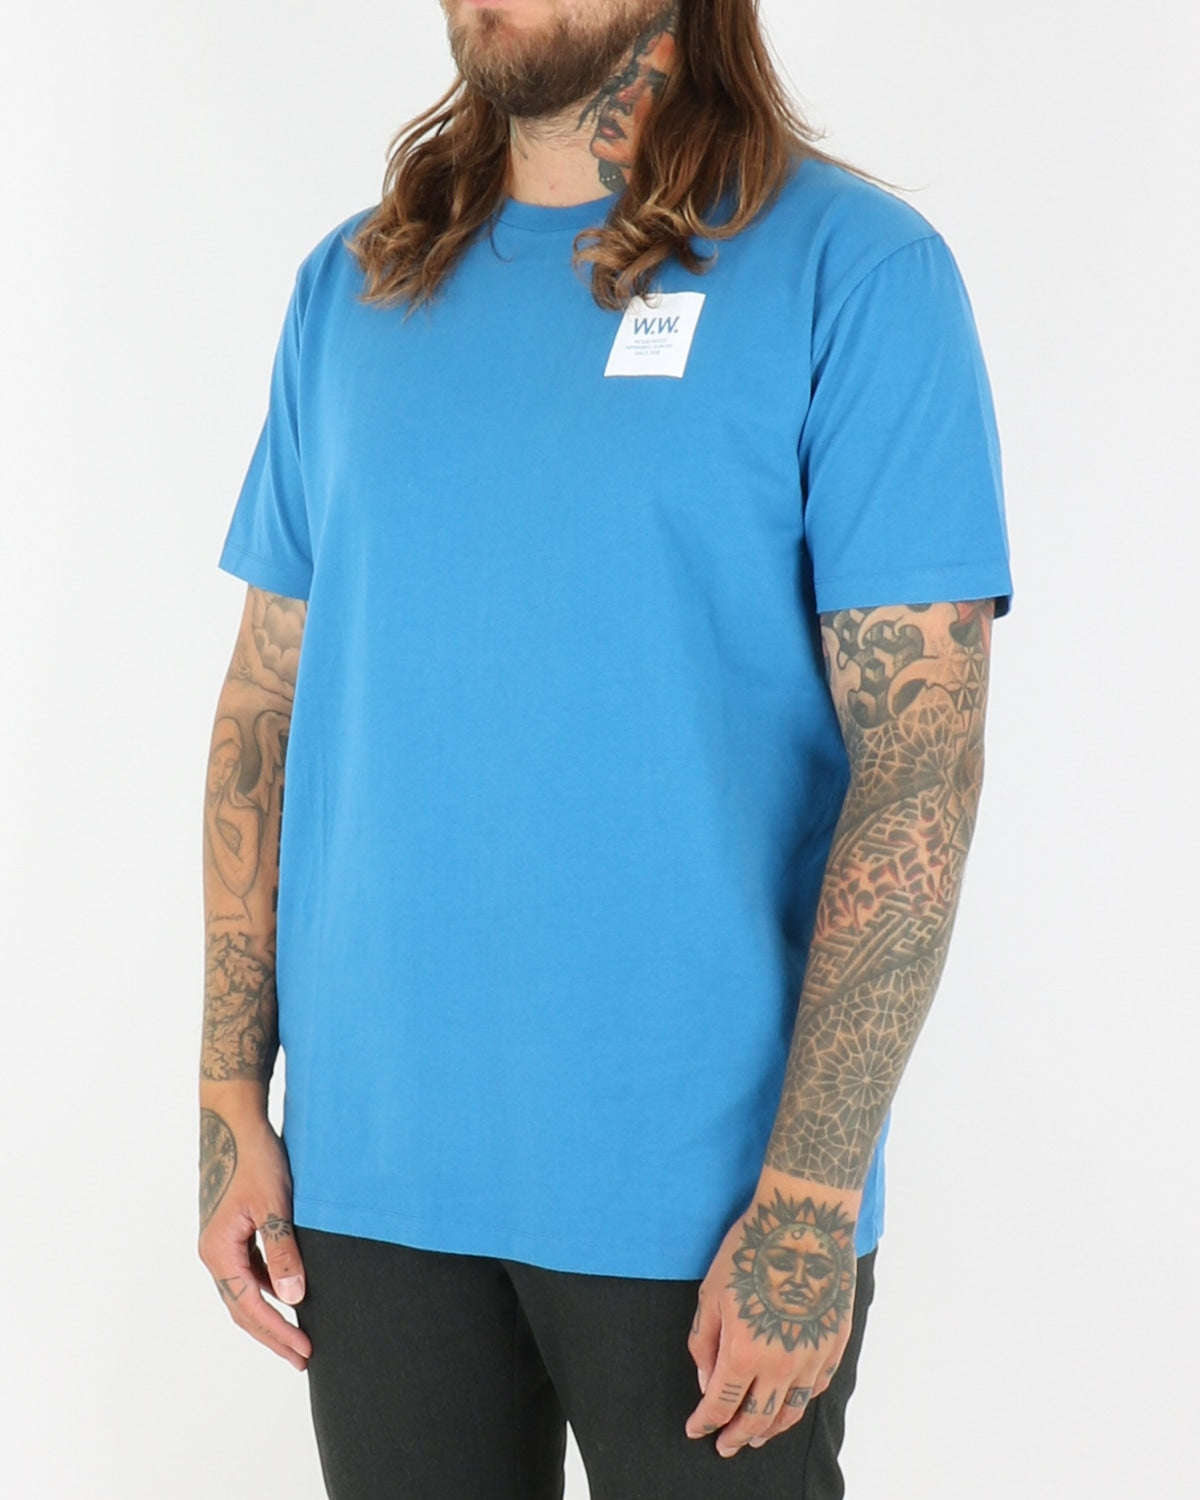 wood wood_ww box t-shirt_bright blue_view_2_3